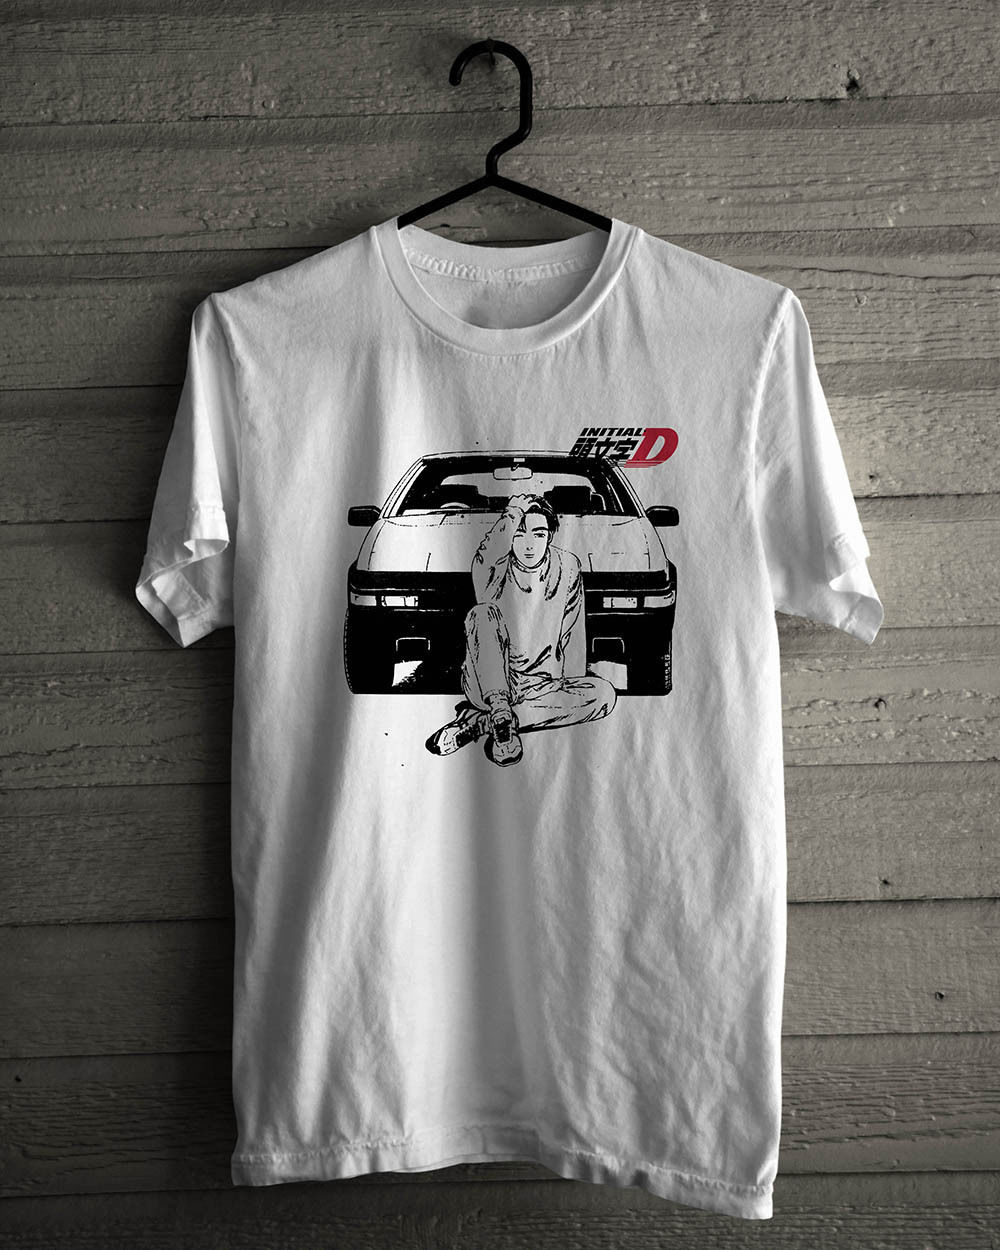 2019 Summer New Cool Tee Shirt Initial D Drift Racings